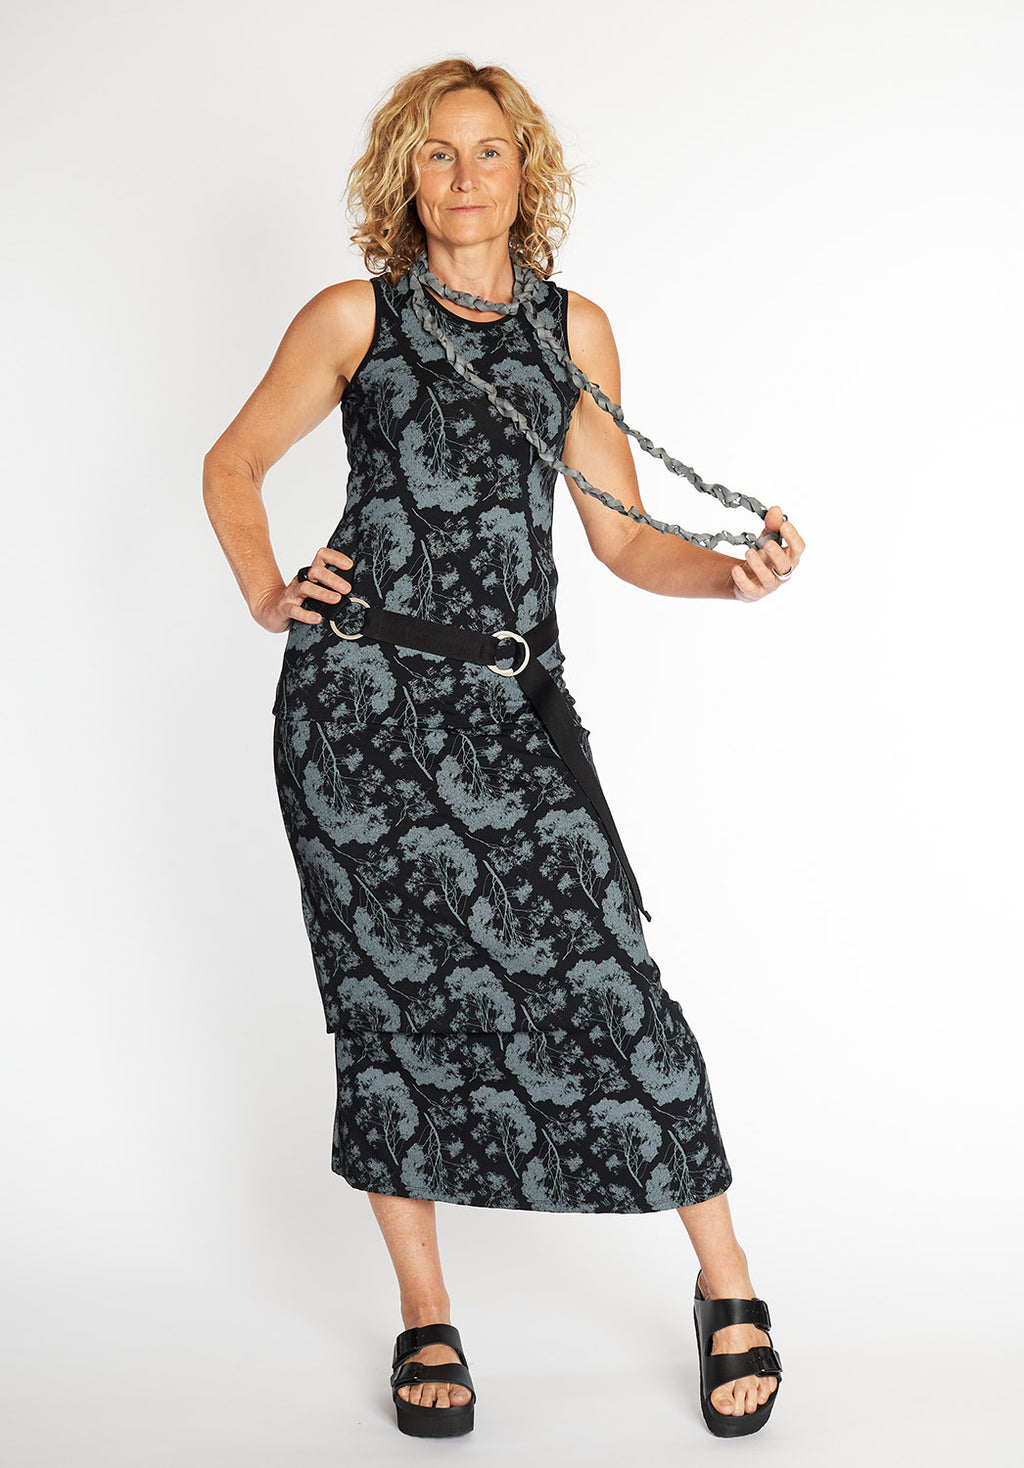 sustainable fashion online, australian fashion designers, shop bamboo fashion online, bamboo skirts australia, australian made boutique, online womens boutique, 100% made in australia